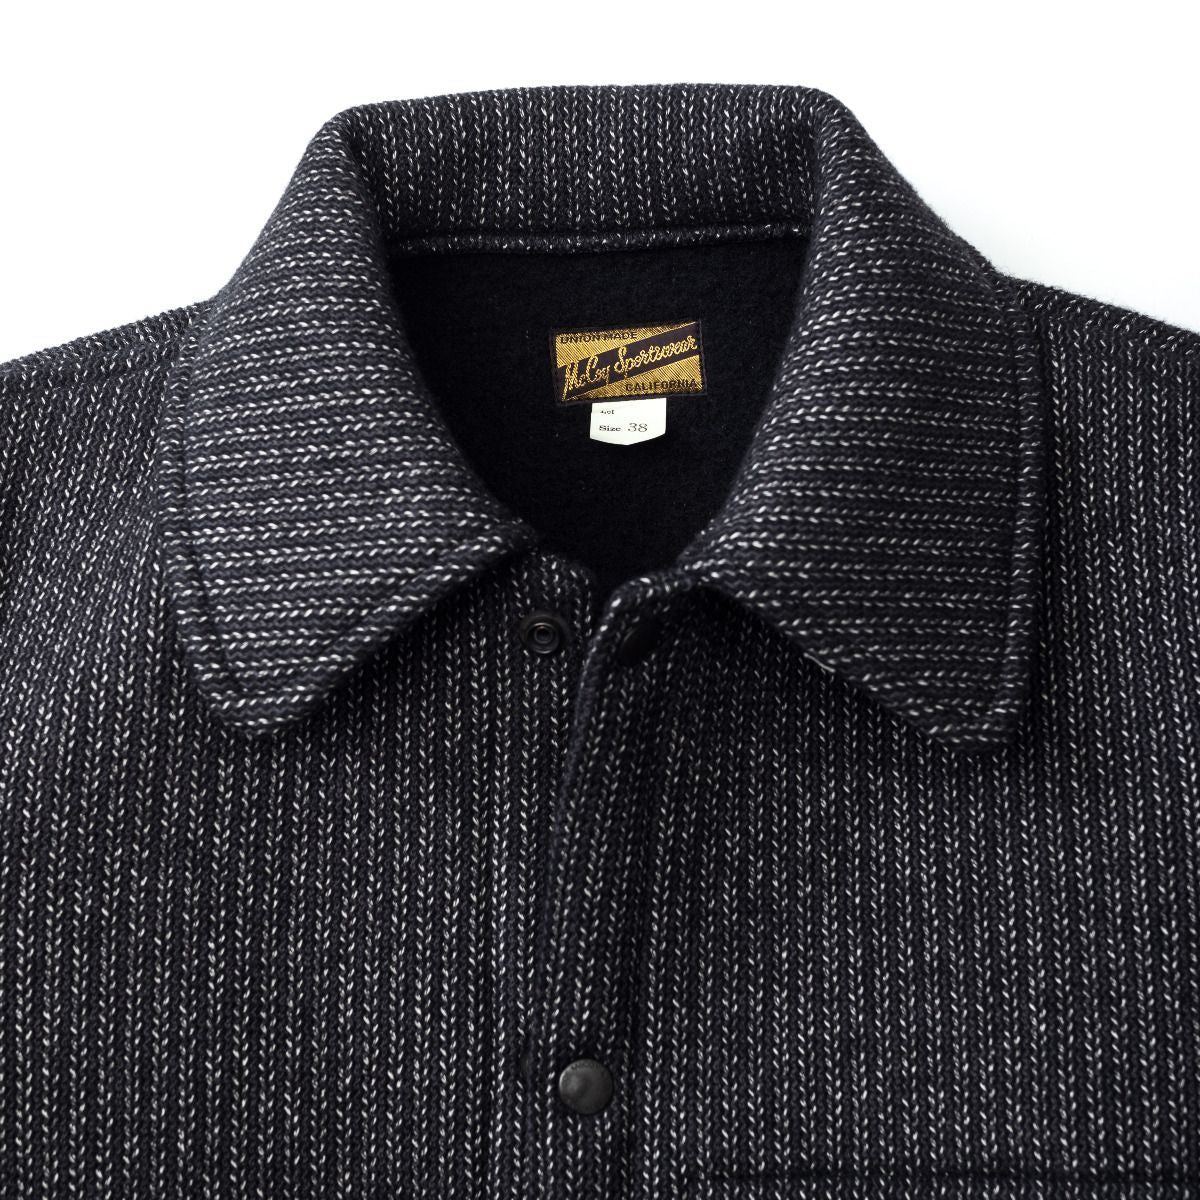 The Real McCoy's Wool Raschel Jacket